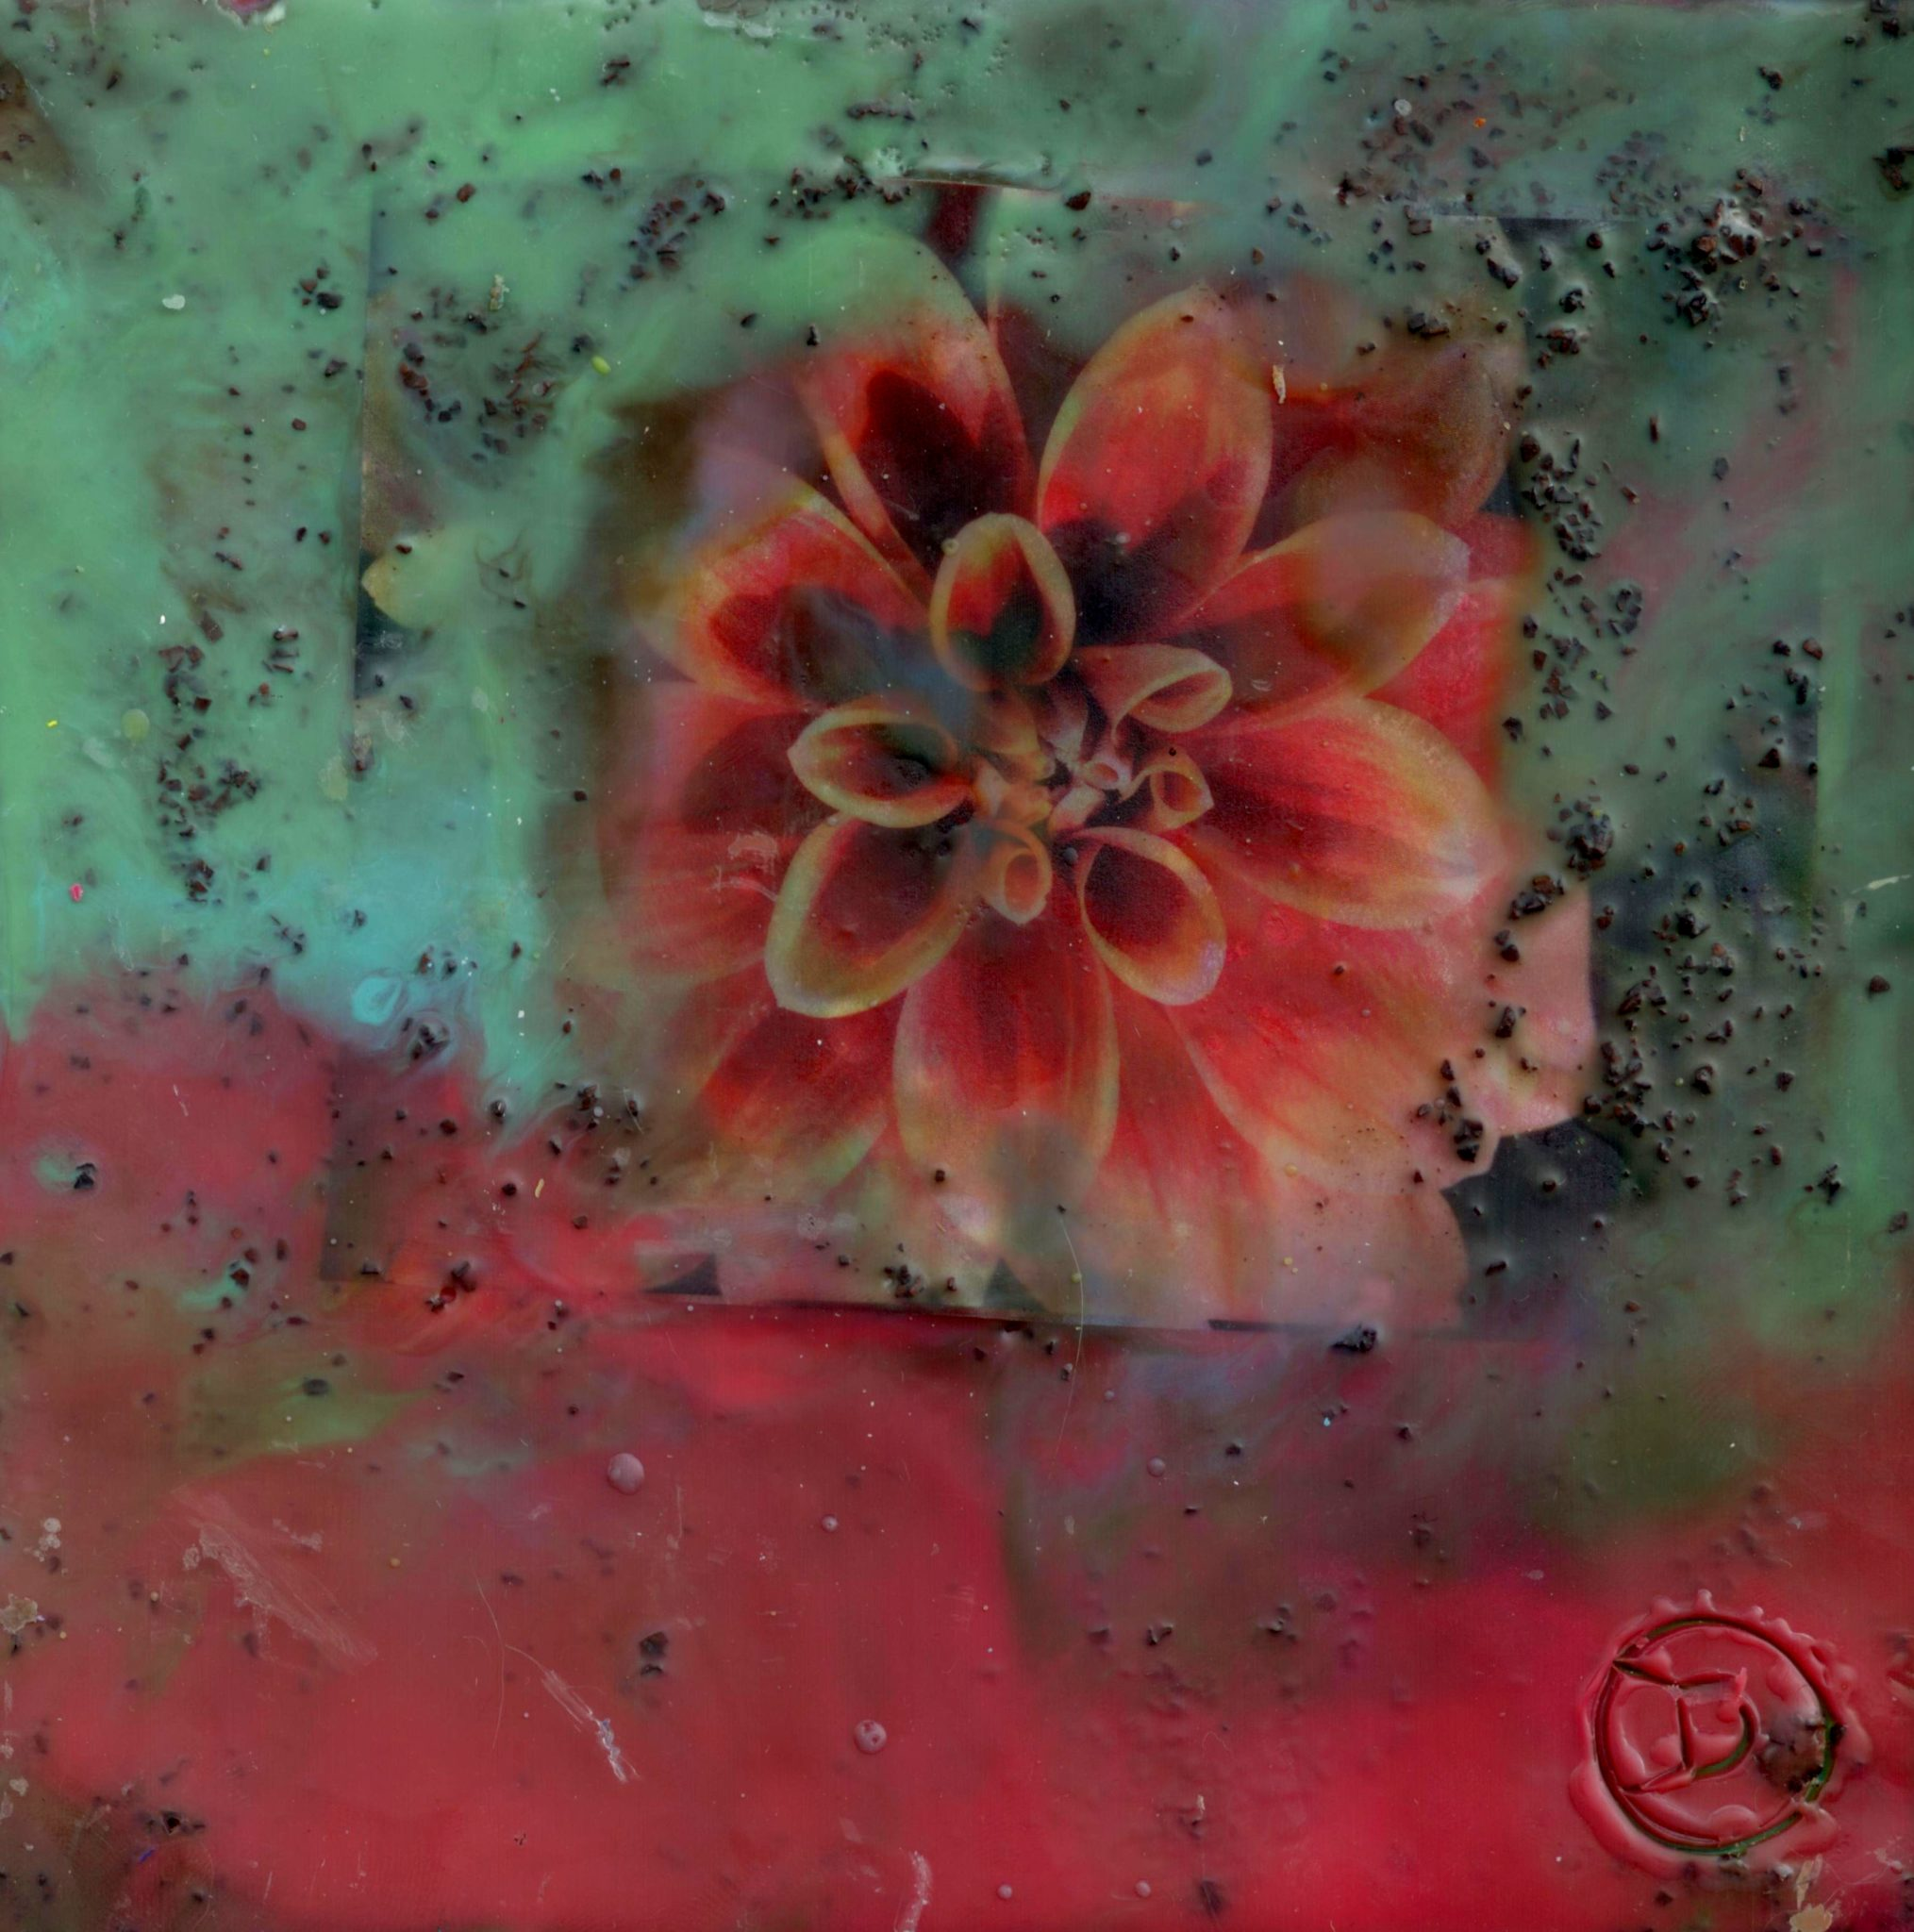 Divining Dahlia, mixed media encaustic by Courtney Putnam